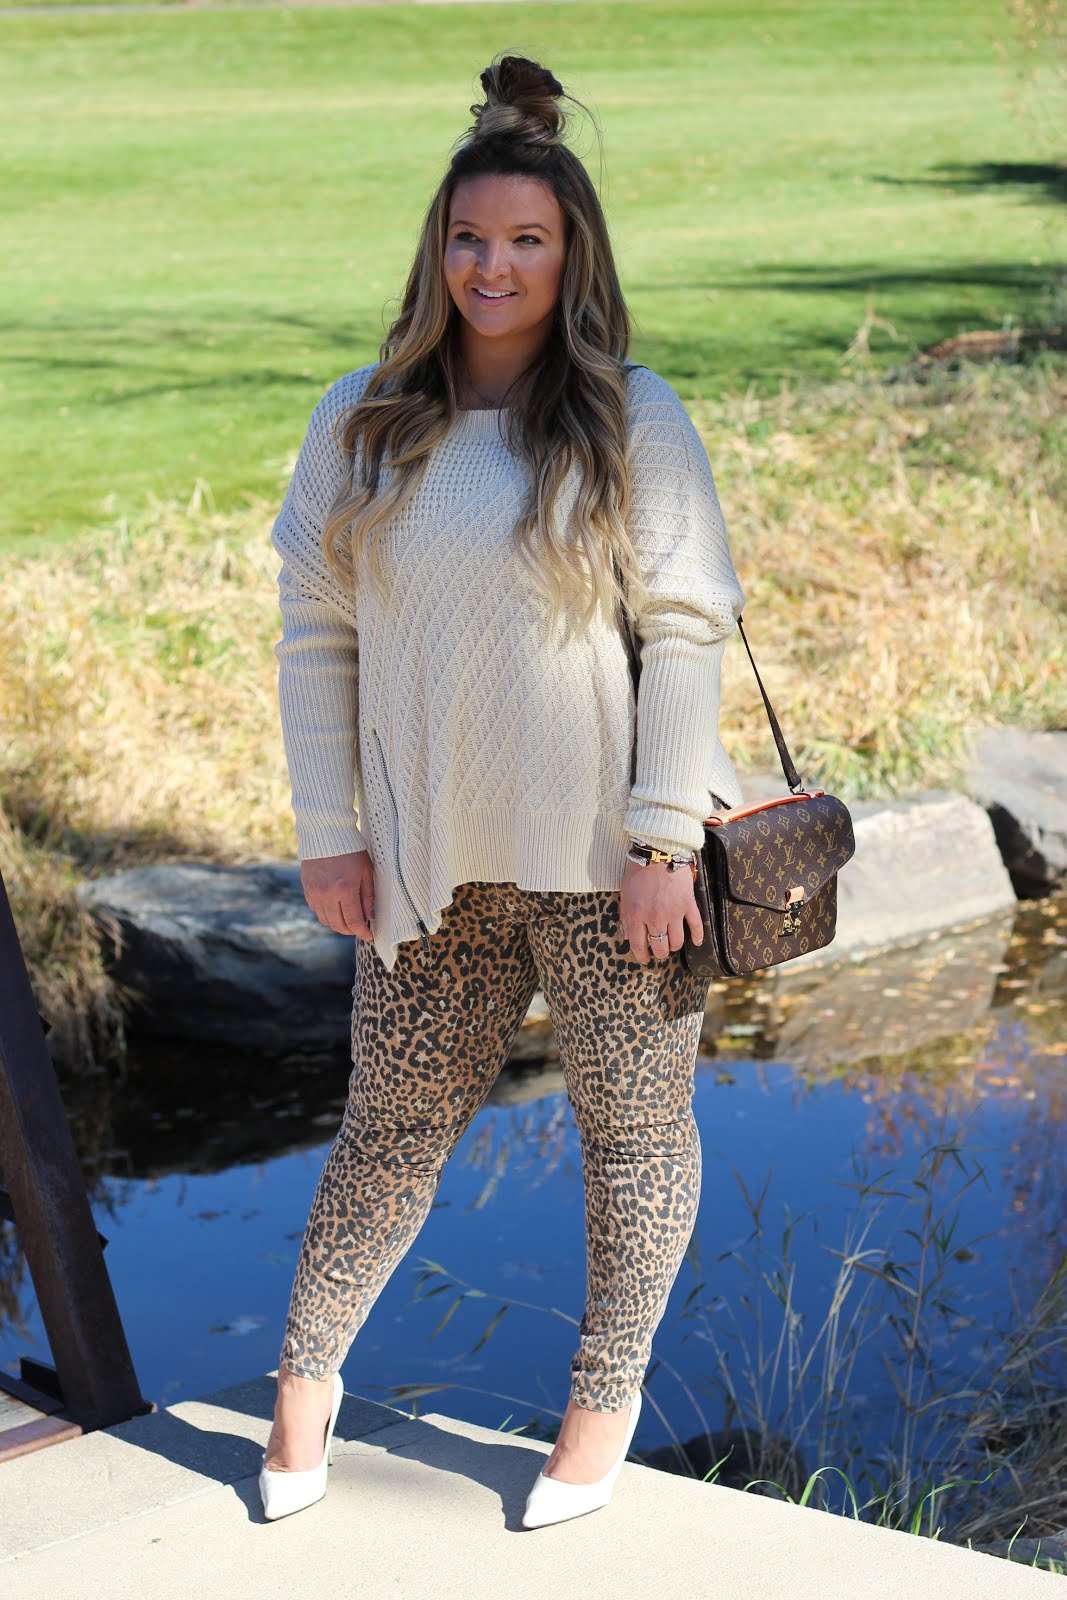 Leopard Pants are better than the usual blue jeans by fashion blogger Delayna Denaye